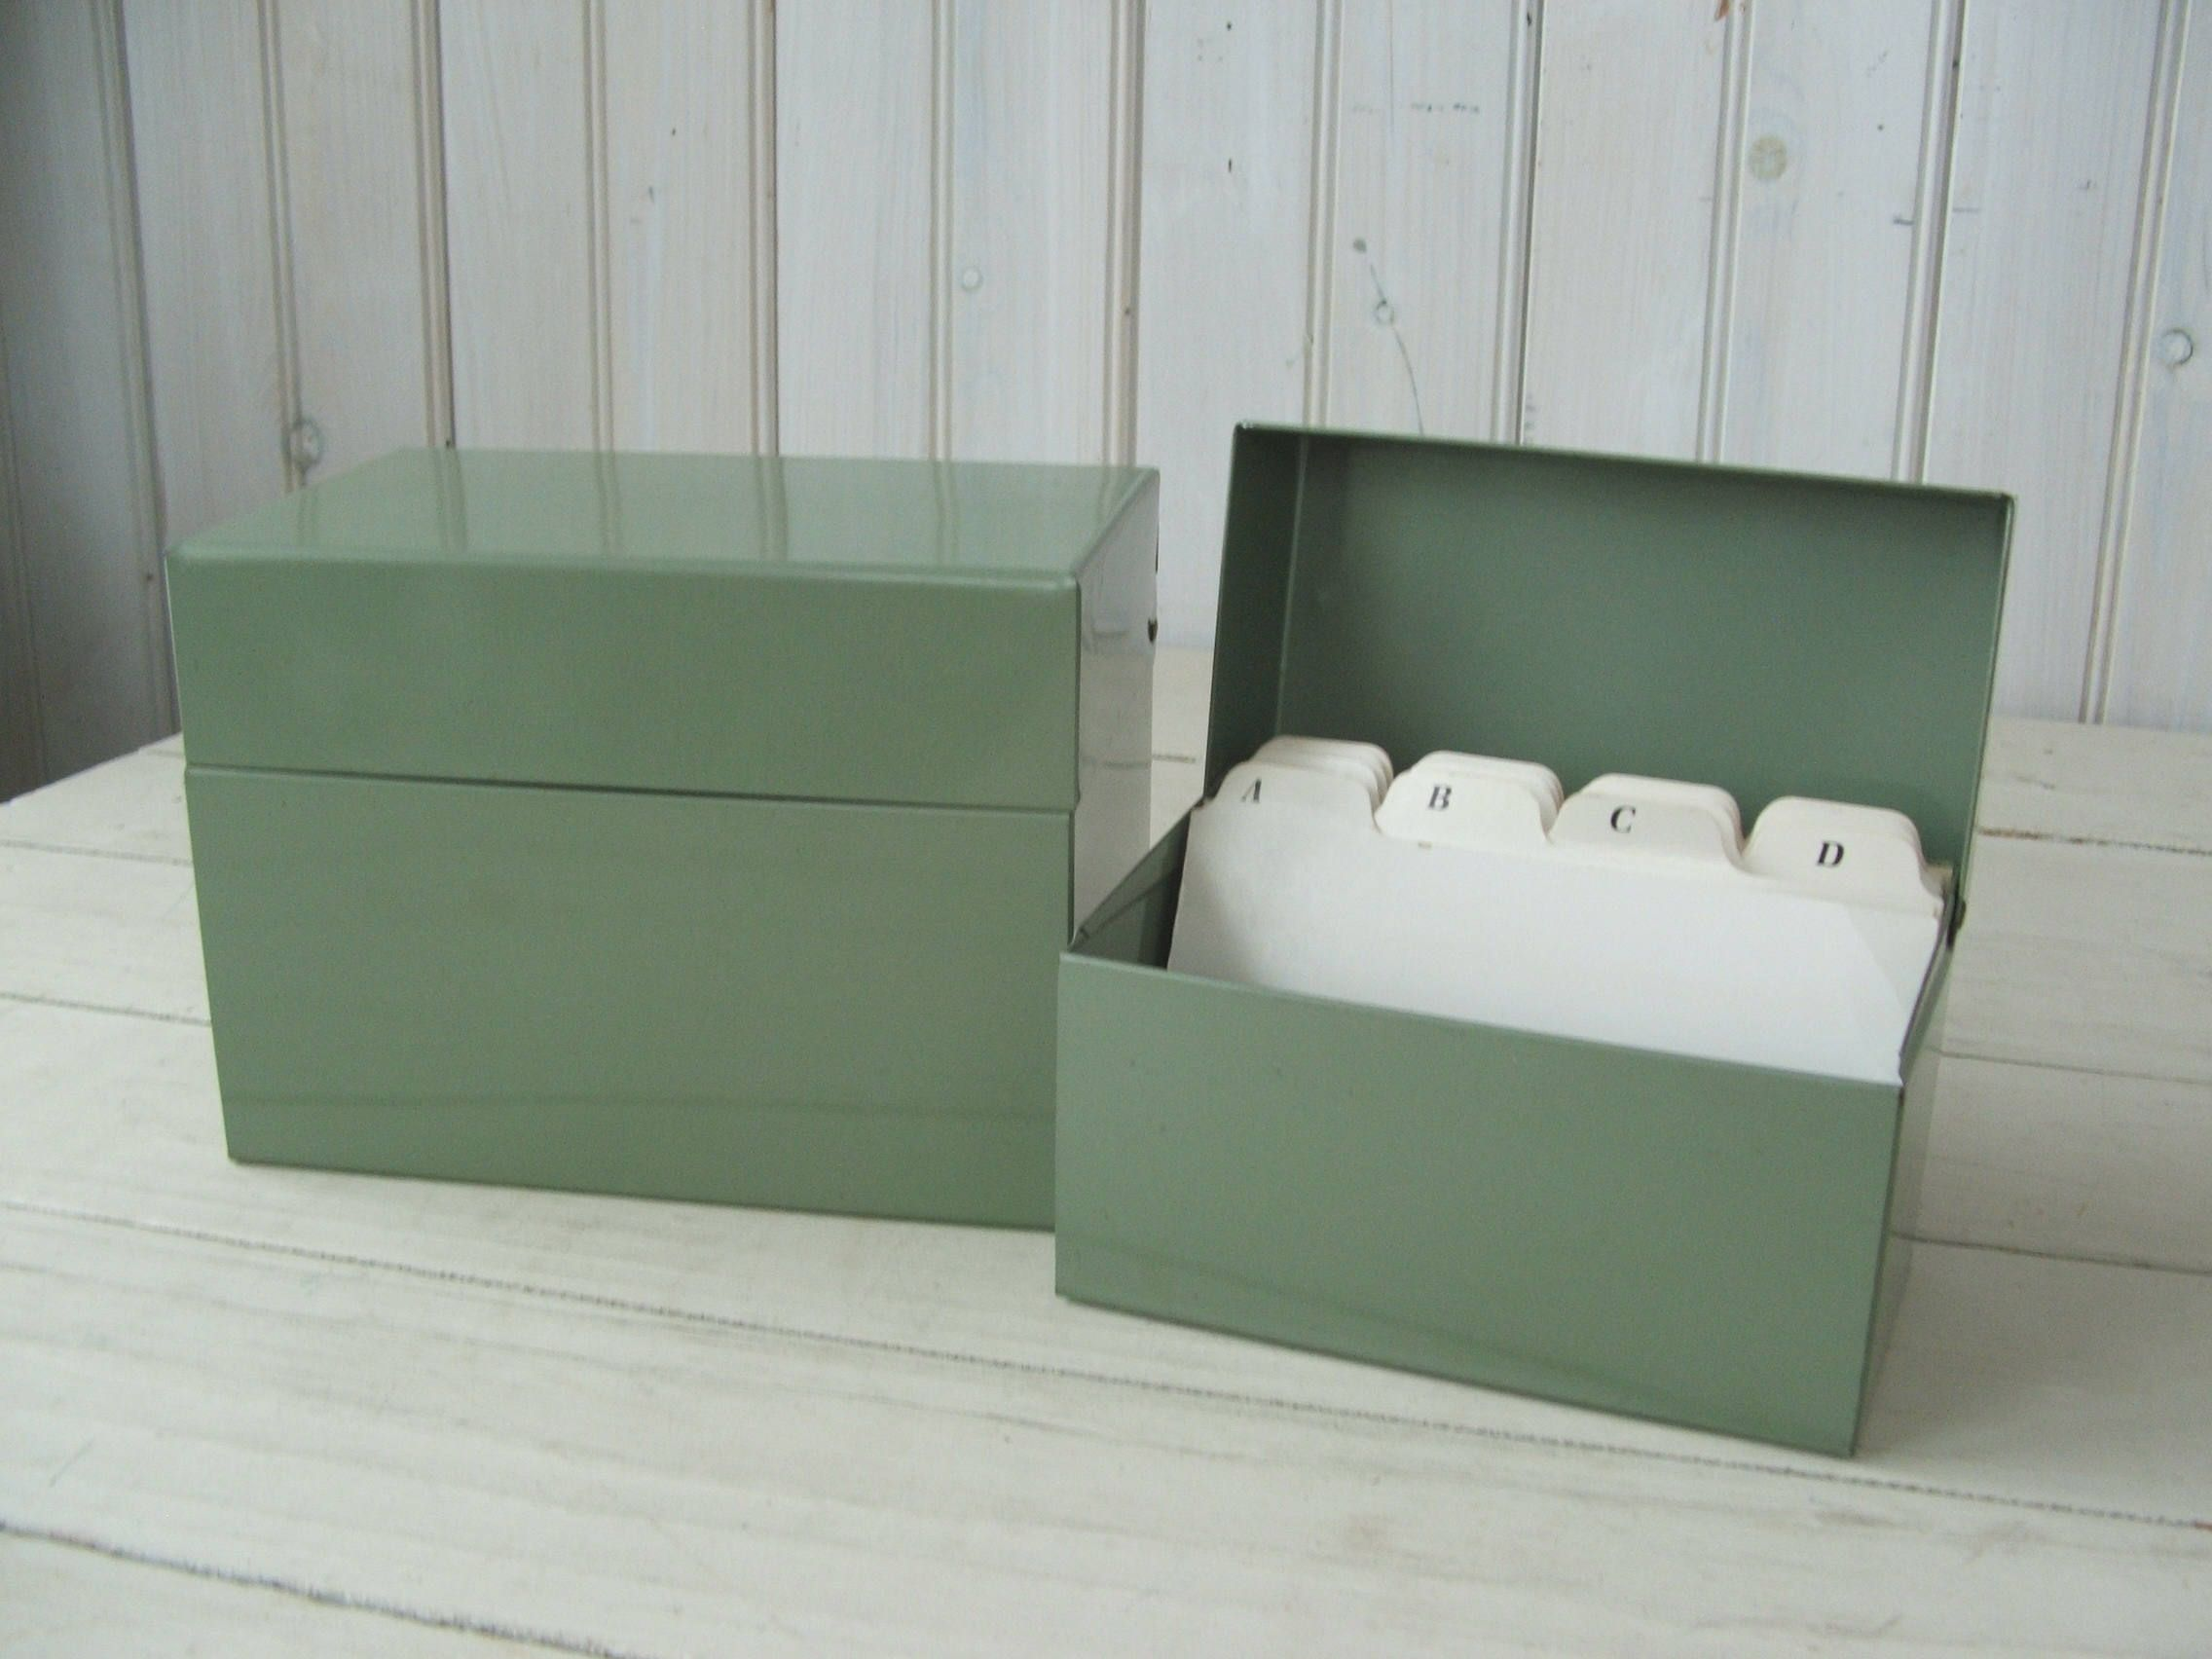 index card box with dividers